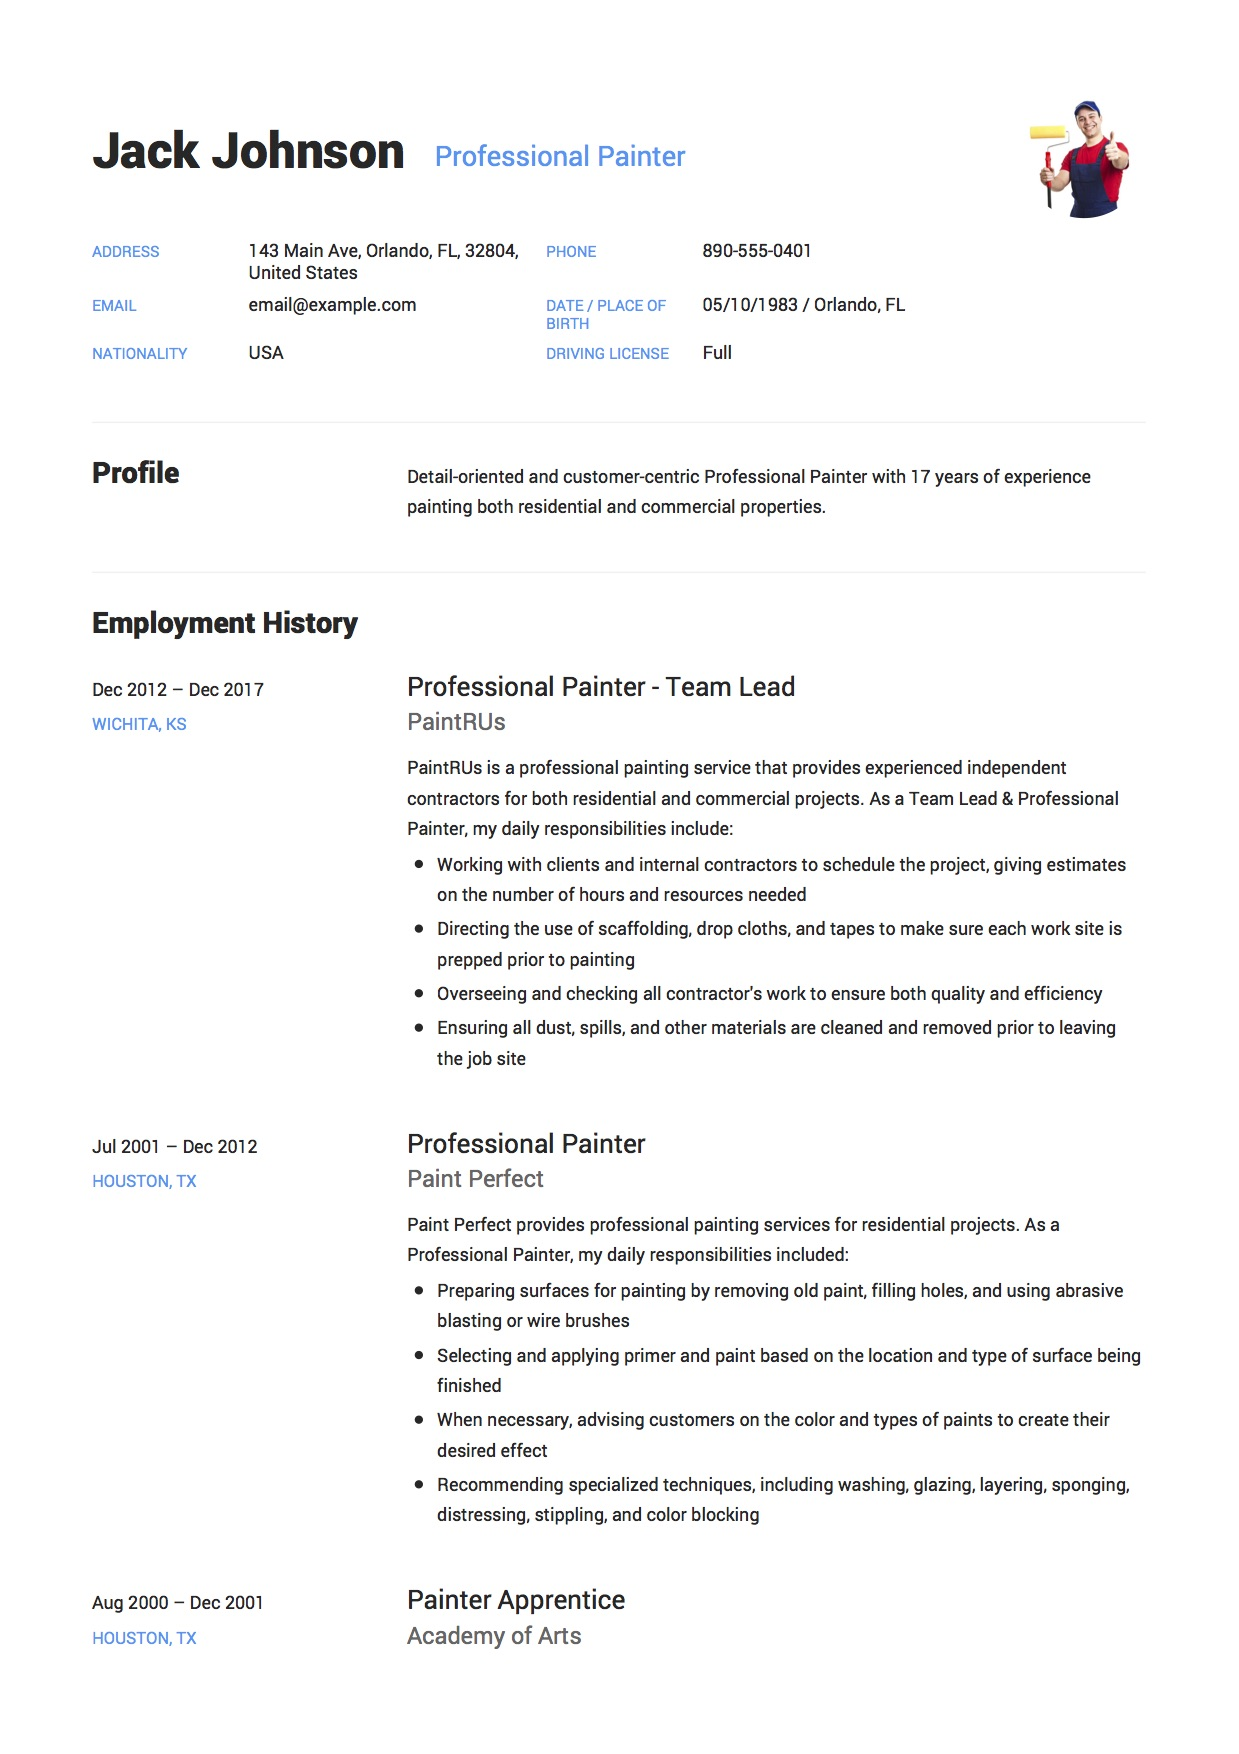 12 Commercial Painter Resume Sample(s)  2018 (free Downloads. Job Resume View. Letterhead Fonts Free. Curriculum Vitae Exemple Moderne. Resume Builder No Sign Up. Sample Cover Letter For Retail Ireland. Resume Sample Administrative. Resume Sample Research Assistant. Curriculum Vitae Ejemplo Estudiante